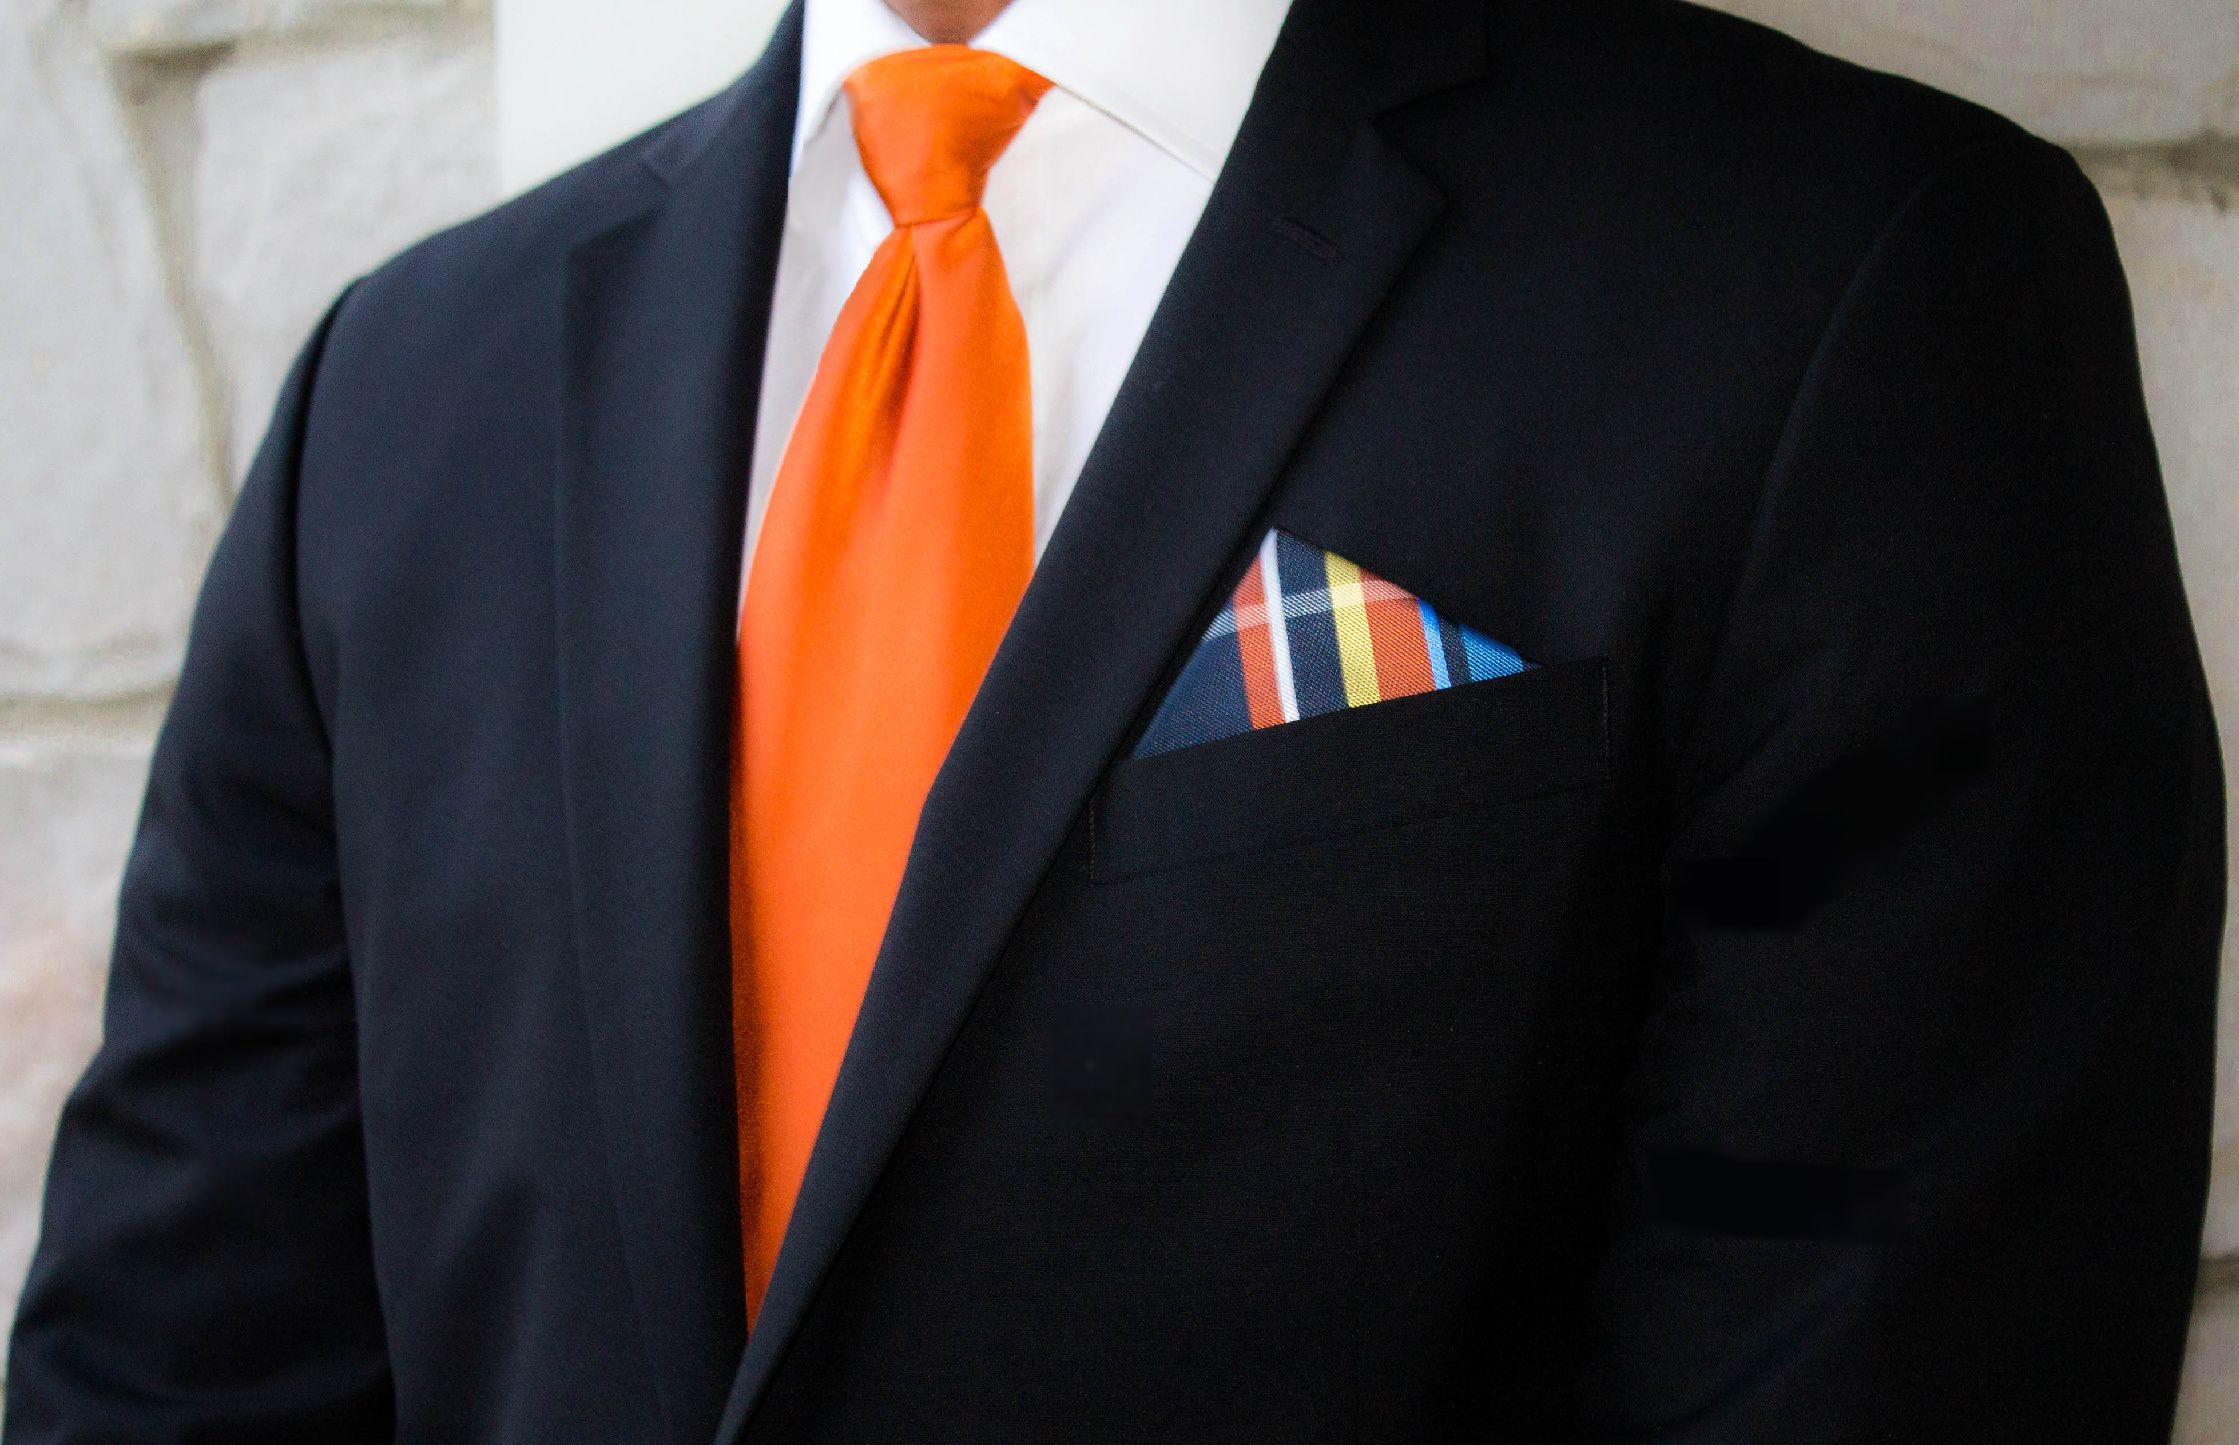 black suit with a bright orange tie suit and tie